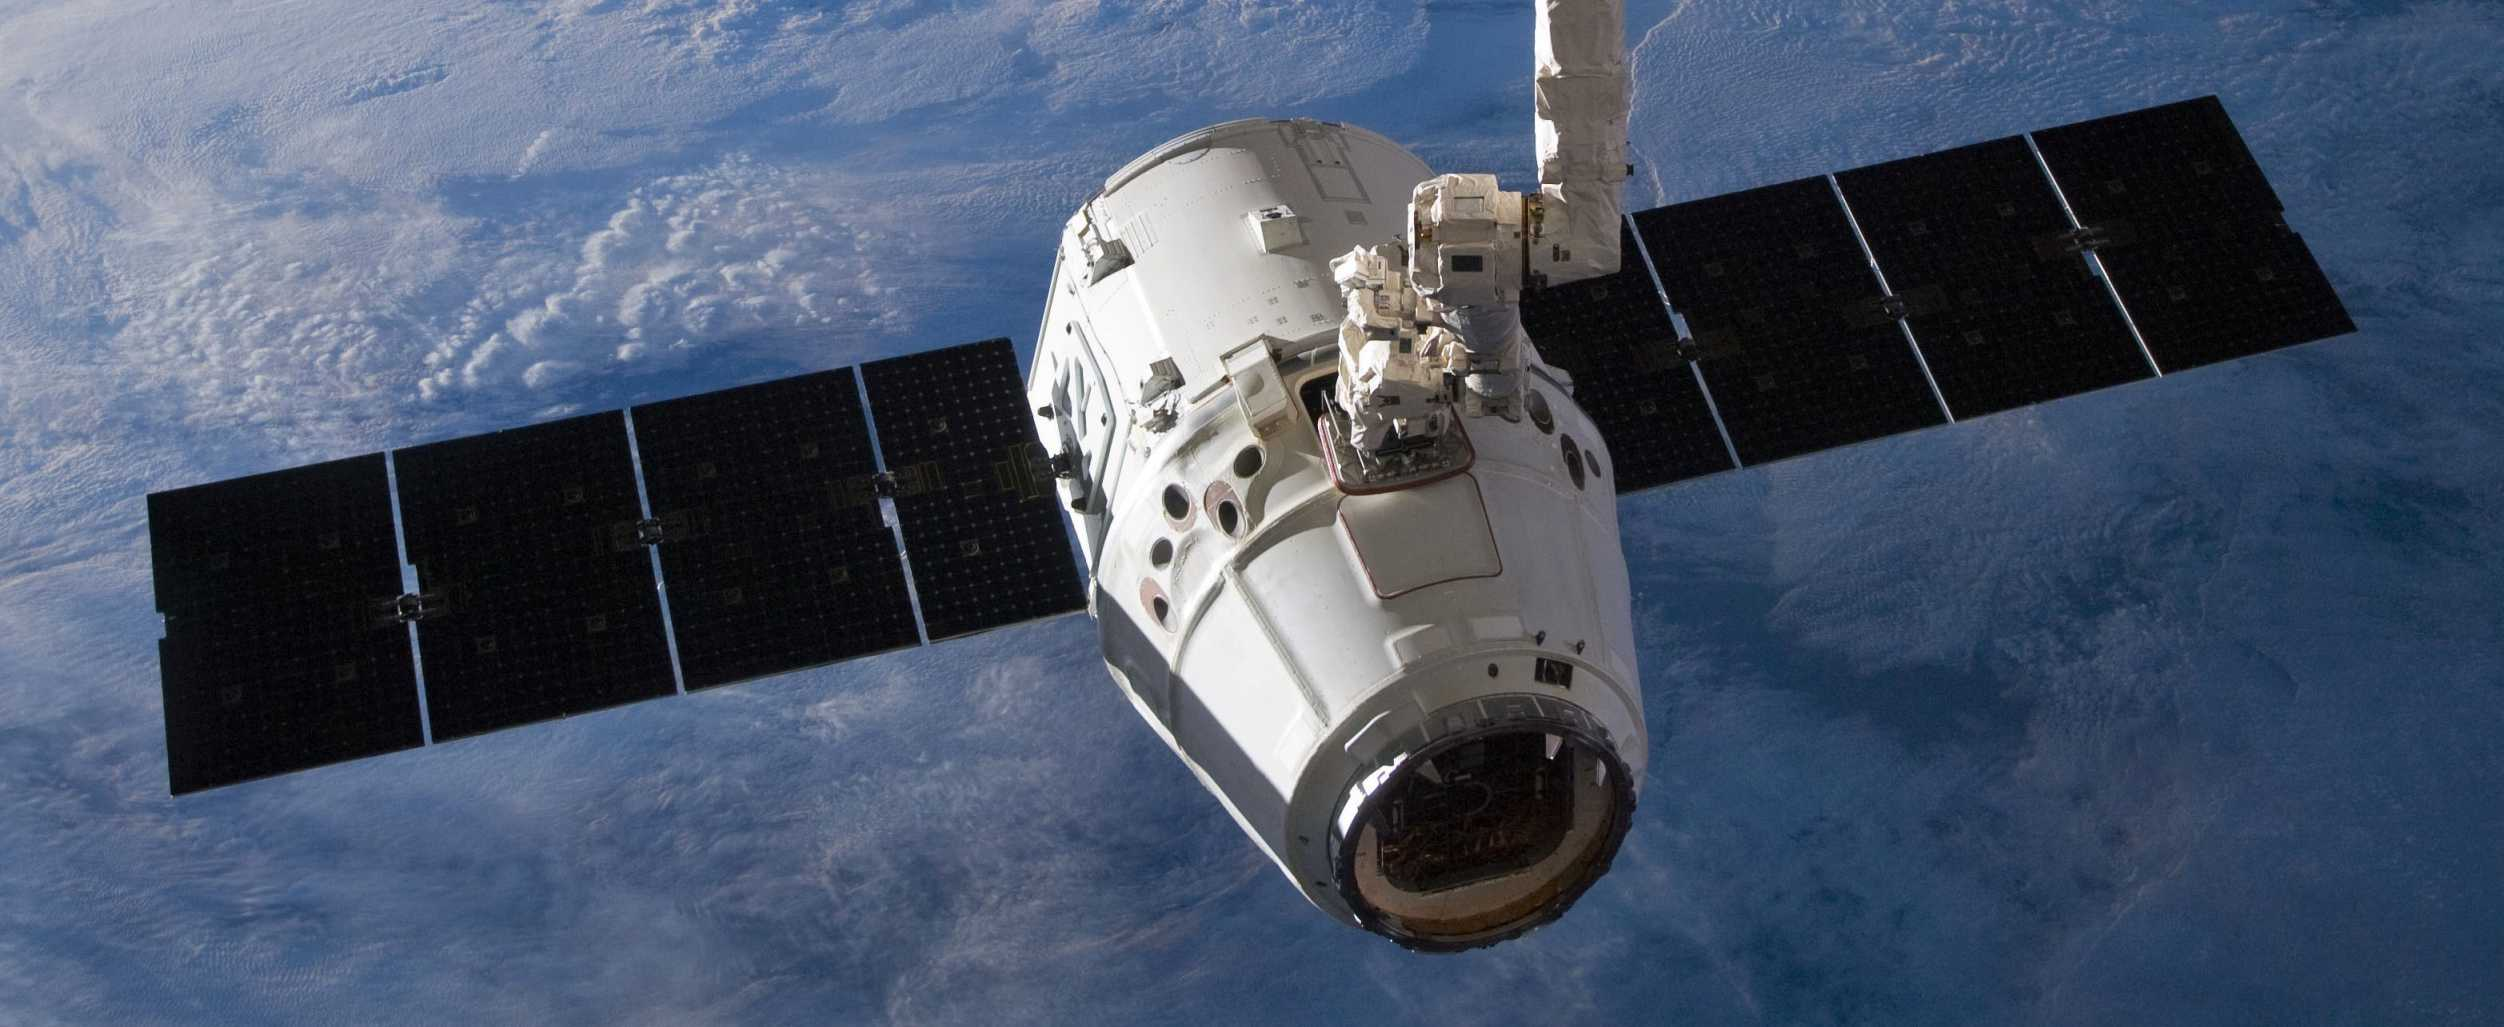 SpaceX_Dragon_C2+_just_prior_to_Canadarm2_release_(ISS031-E-079326) crop 2 (c)